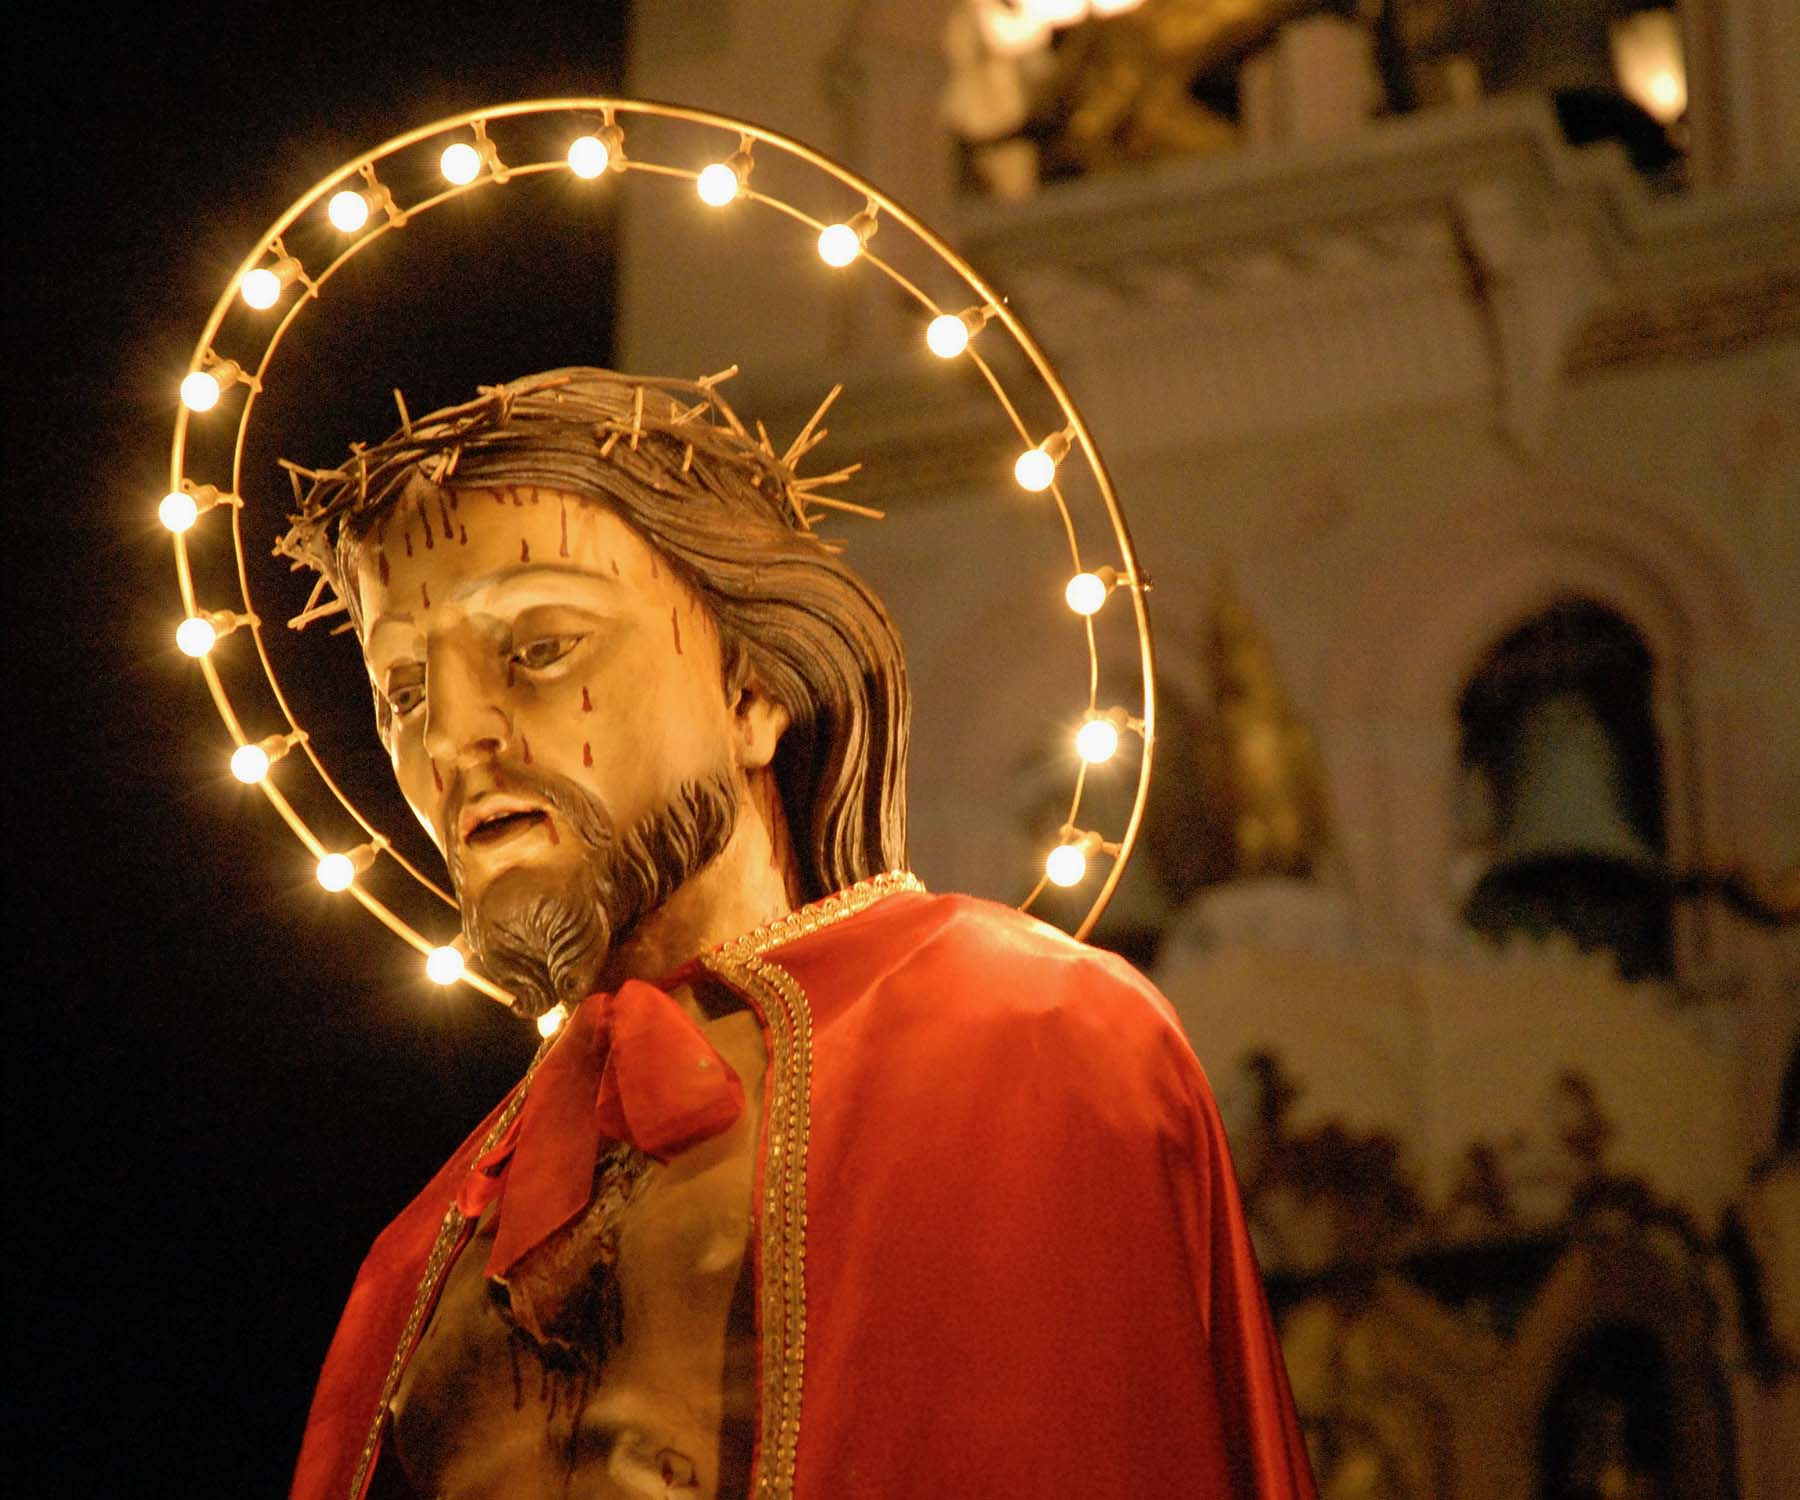 Holy week in Sicily, ecce homo